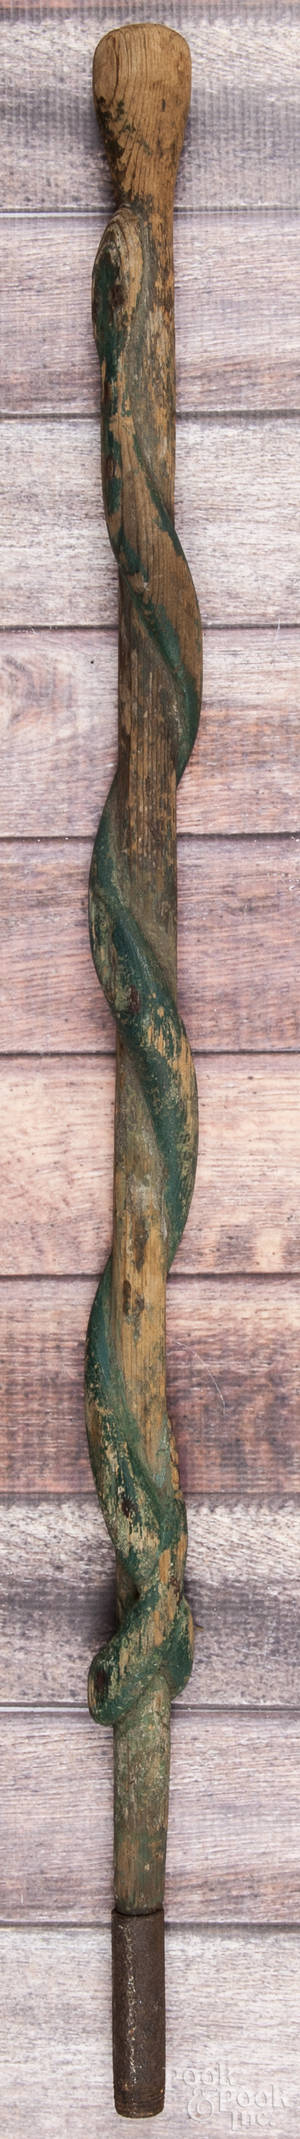 Carved and painted walking stick